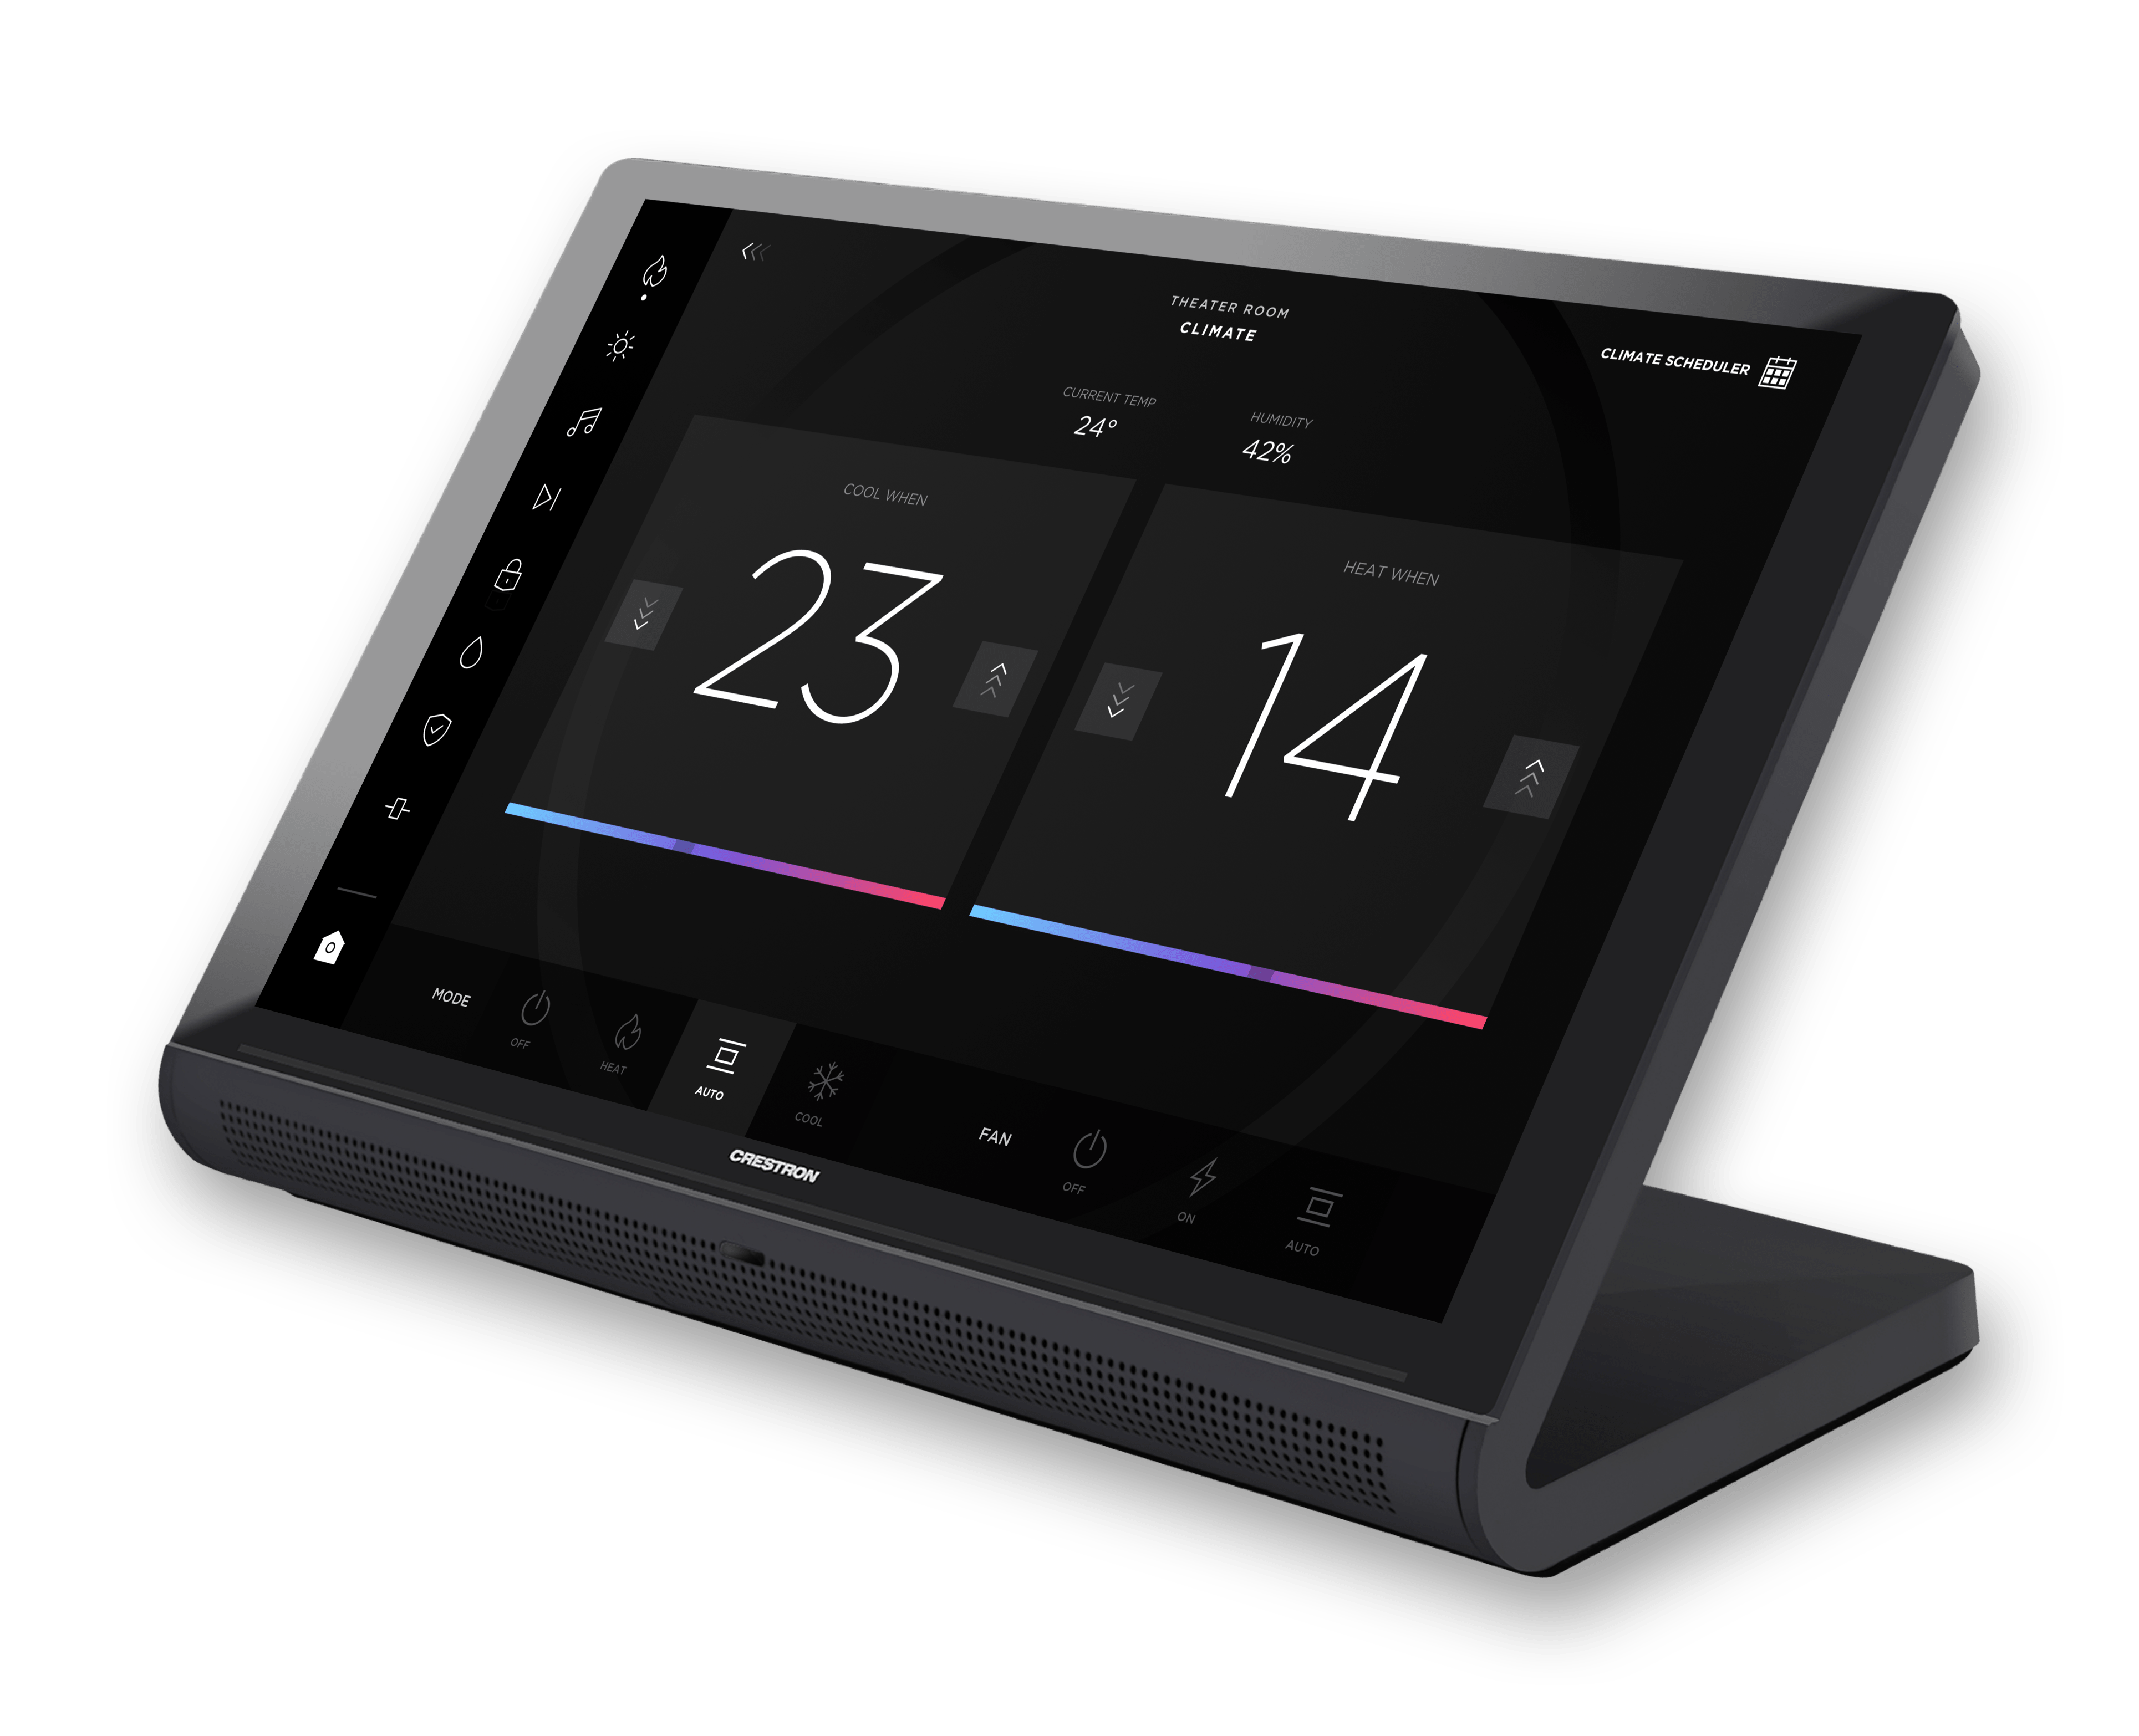 Onyx Crestron GUI template showing thermostats on a TS-1070 touch panel